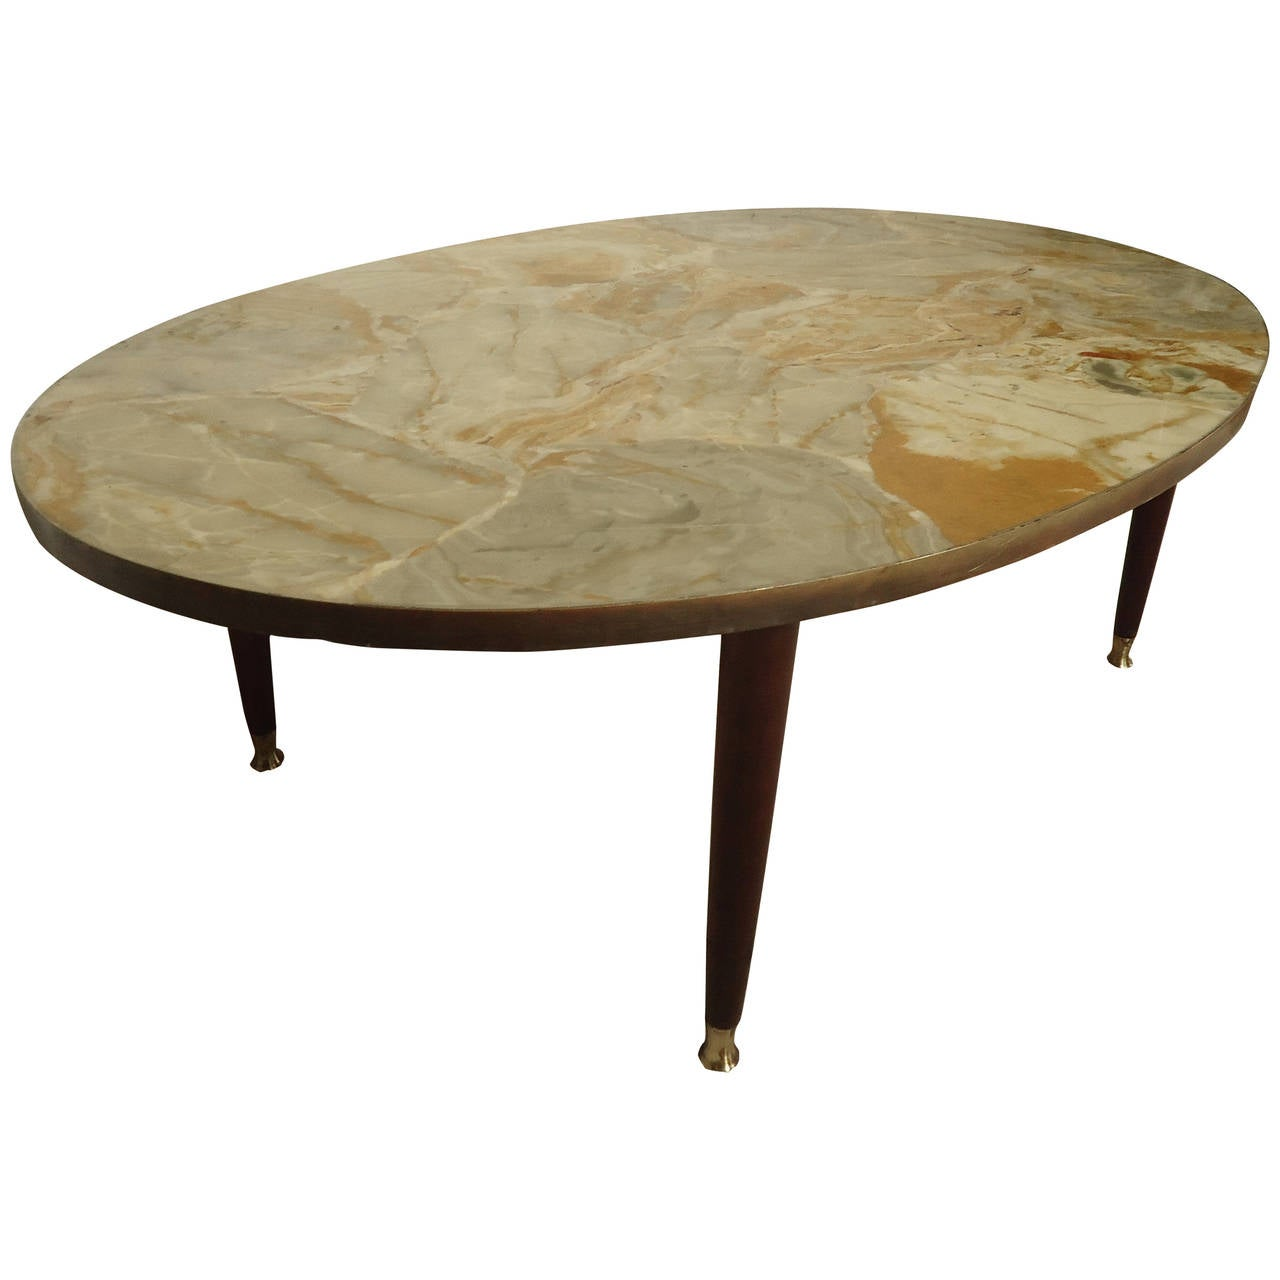 Mid century modern italian marble top coffee table for for Stone topped coffee tables